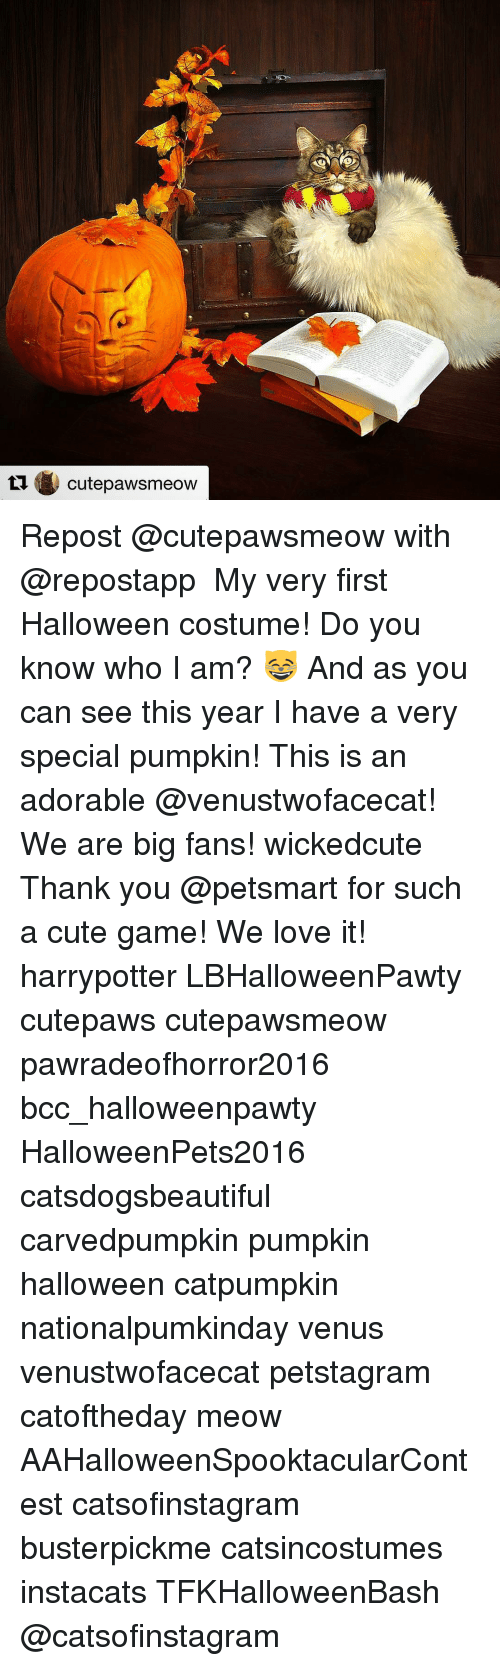 Pumpkins Halloween: ti Cute pawsmeow Repost @cutepawsmeow with @repostapp ・・・ My very first Halloween costume! Do you know who I am? 😸 And as you can see this year I have a very special pumpkin! This is an adorable @venustwofacecat! We are big fans! wickedcute Thank you @petsmart for such a cute game! We love it! harrypotter LBHalloweenPawty cutepaws cutepawsmeow pawradeofhorror2016 bcc_halloweenpawty HalloweenPets2016 catsdogsbeautiful carvedpumpkin pumpkin halloween catpumpkin nationalpumkinday venus venustwofacecat petstagram catoftheday meow AAHalloweenSpooktacularContest catsofinstagram busterpickme catsincostumes instacats TFKHalloweenBash @catsofinstagram